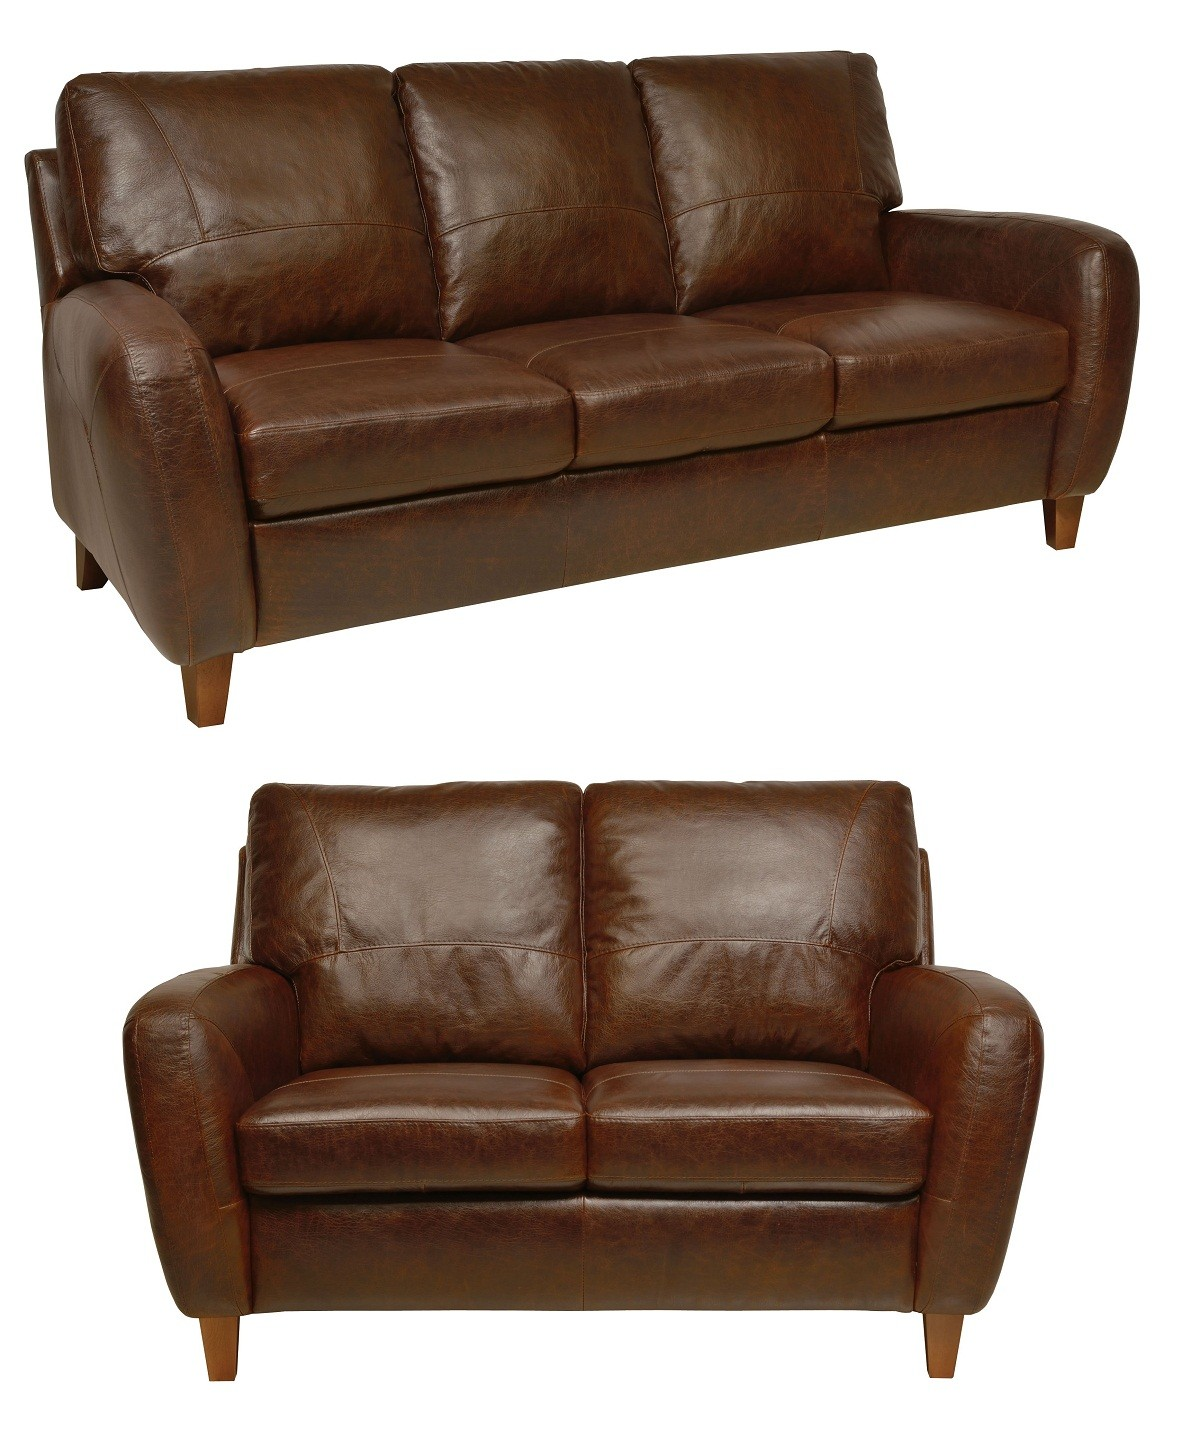 Italian Furniture Living Room: Jennifer Antique Tan Italian Leather Living Room Set From